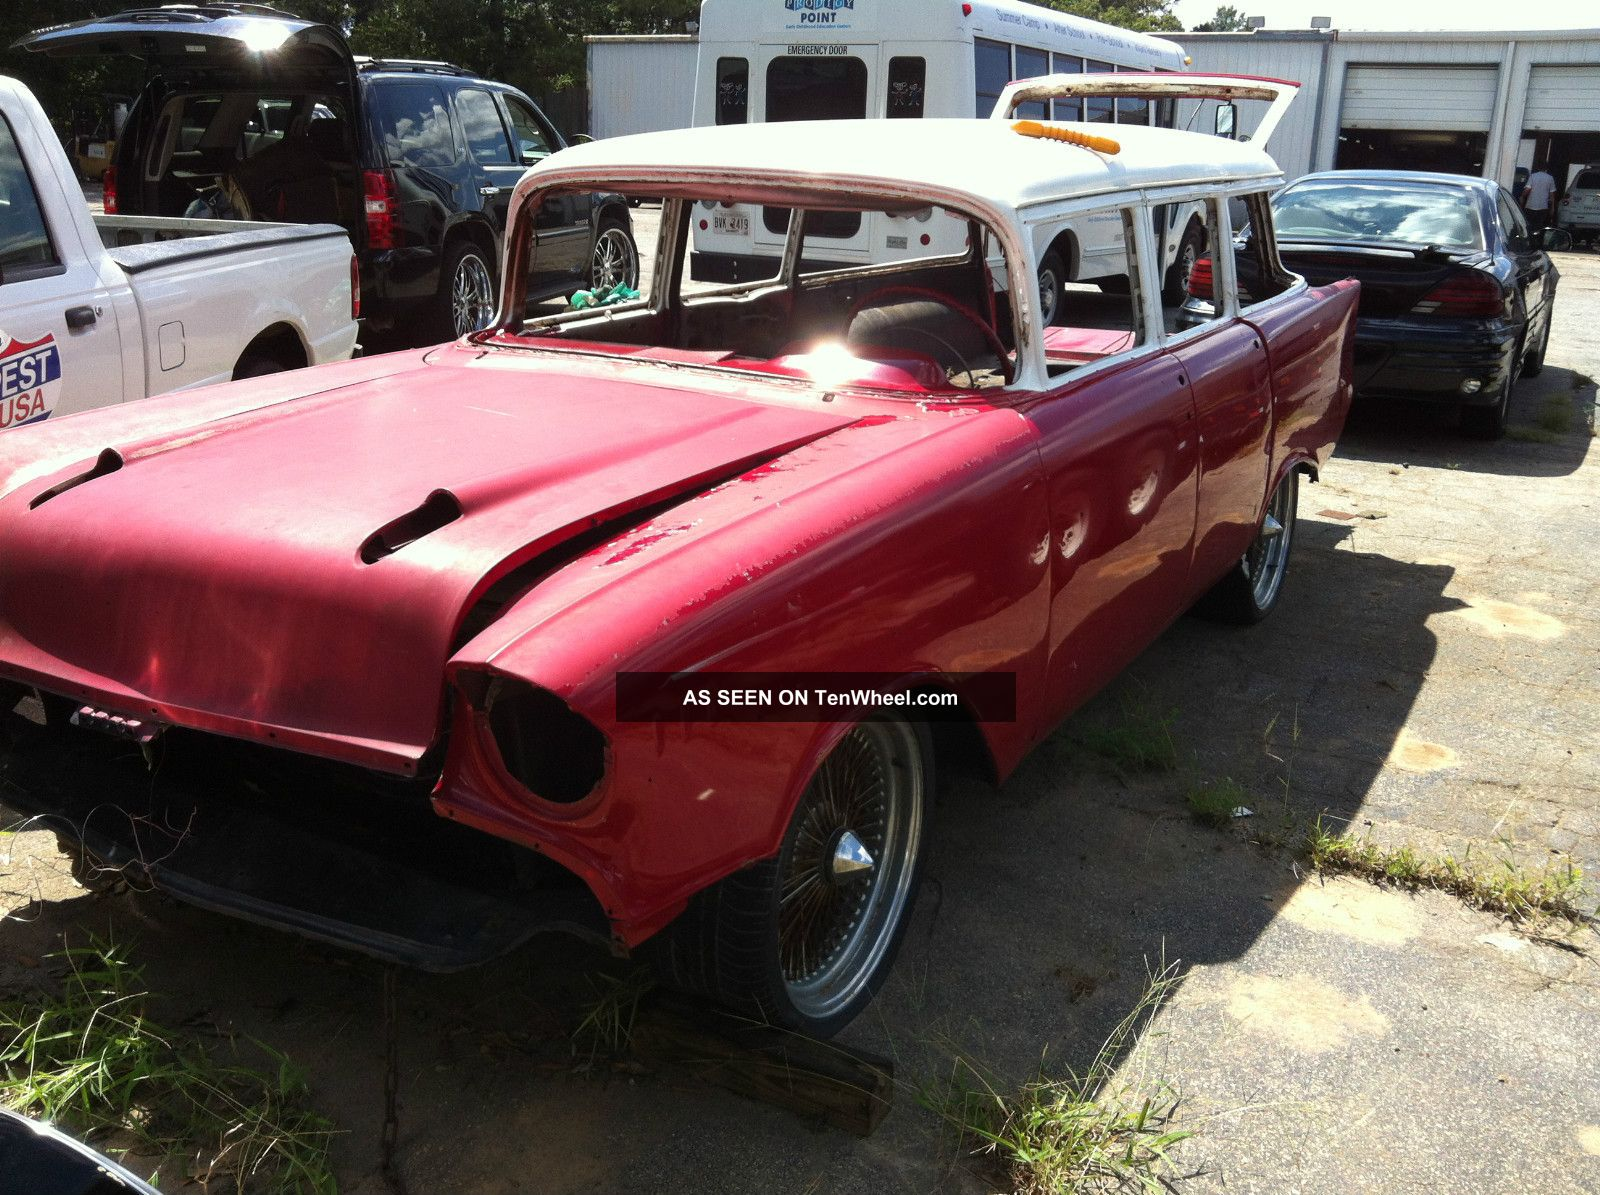 Project Car 1957 Chevy Wagon Bel Air/150/210 photo